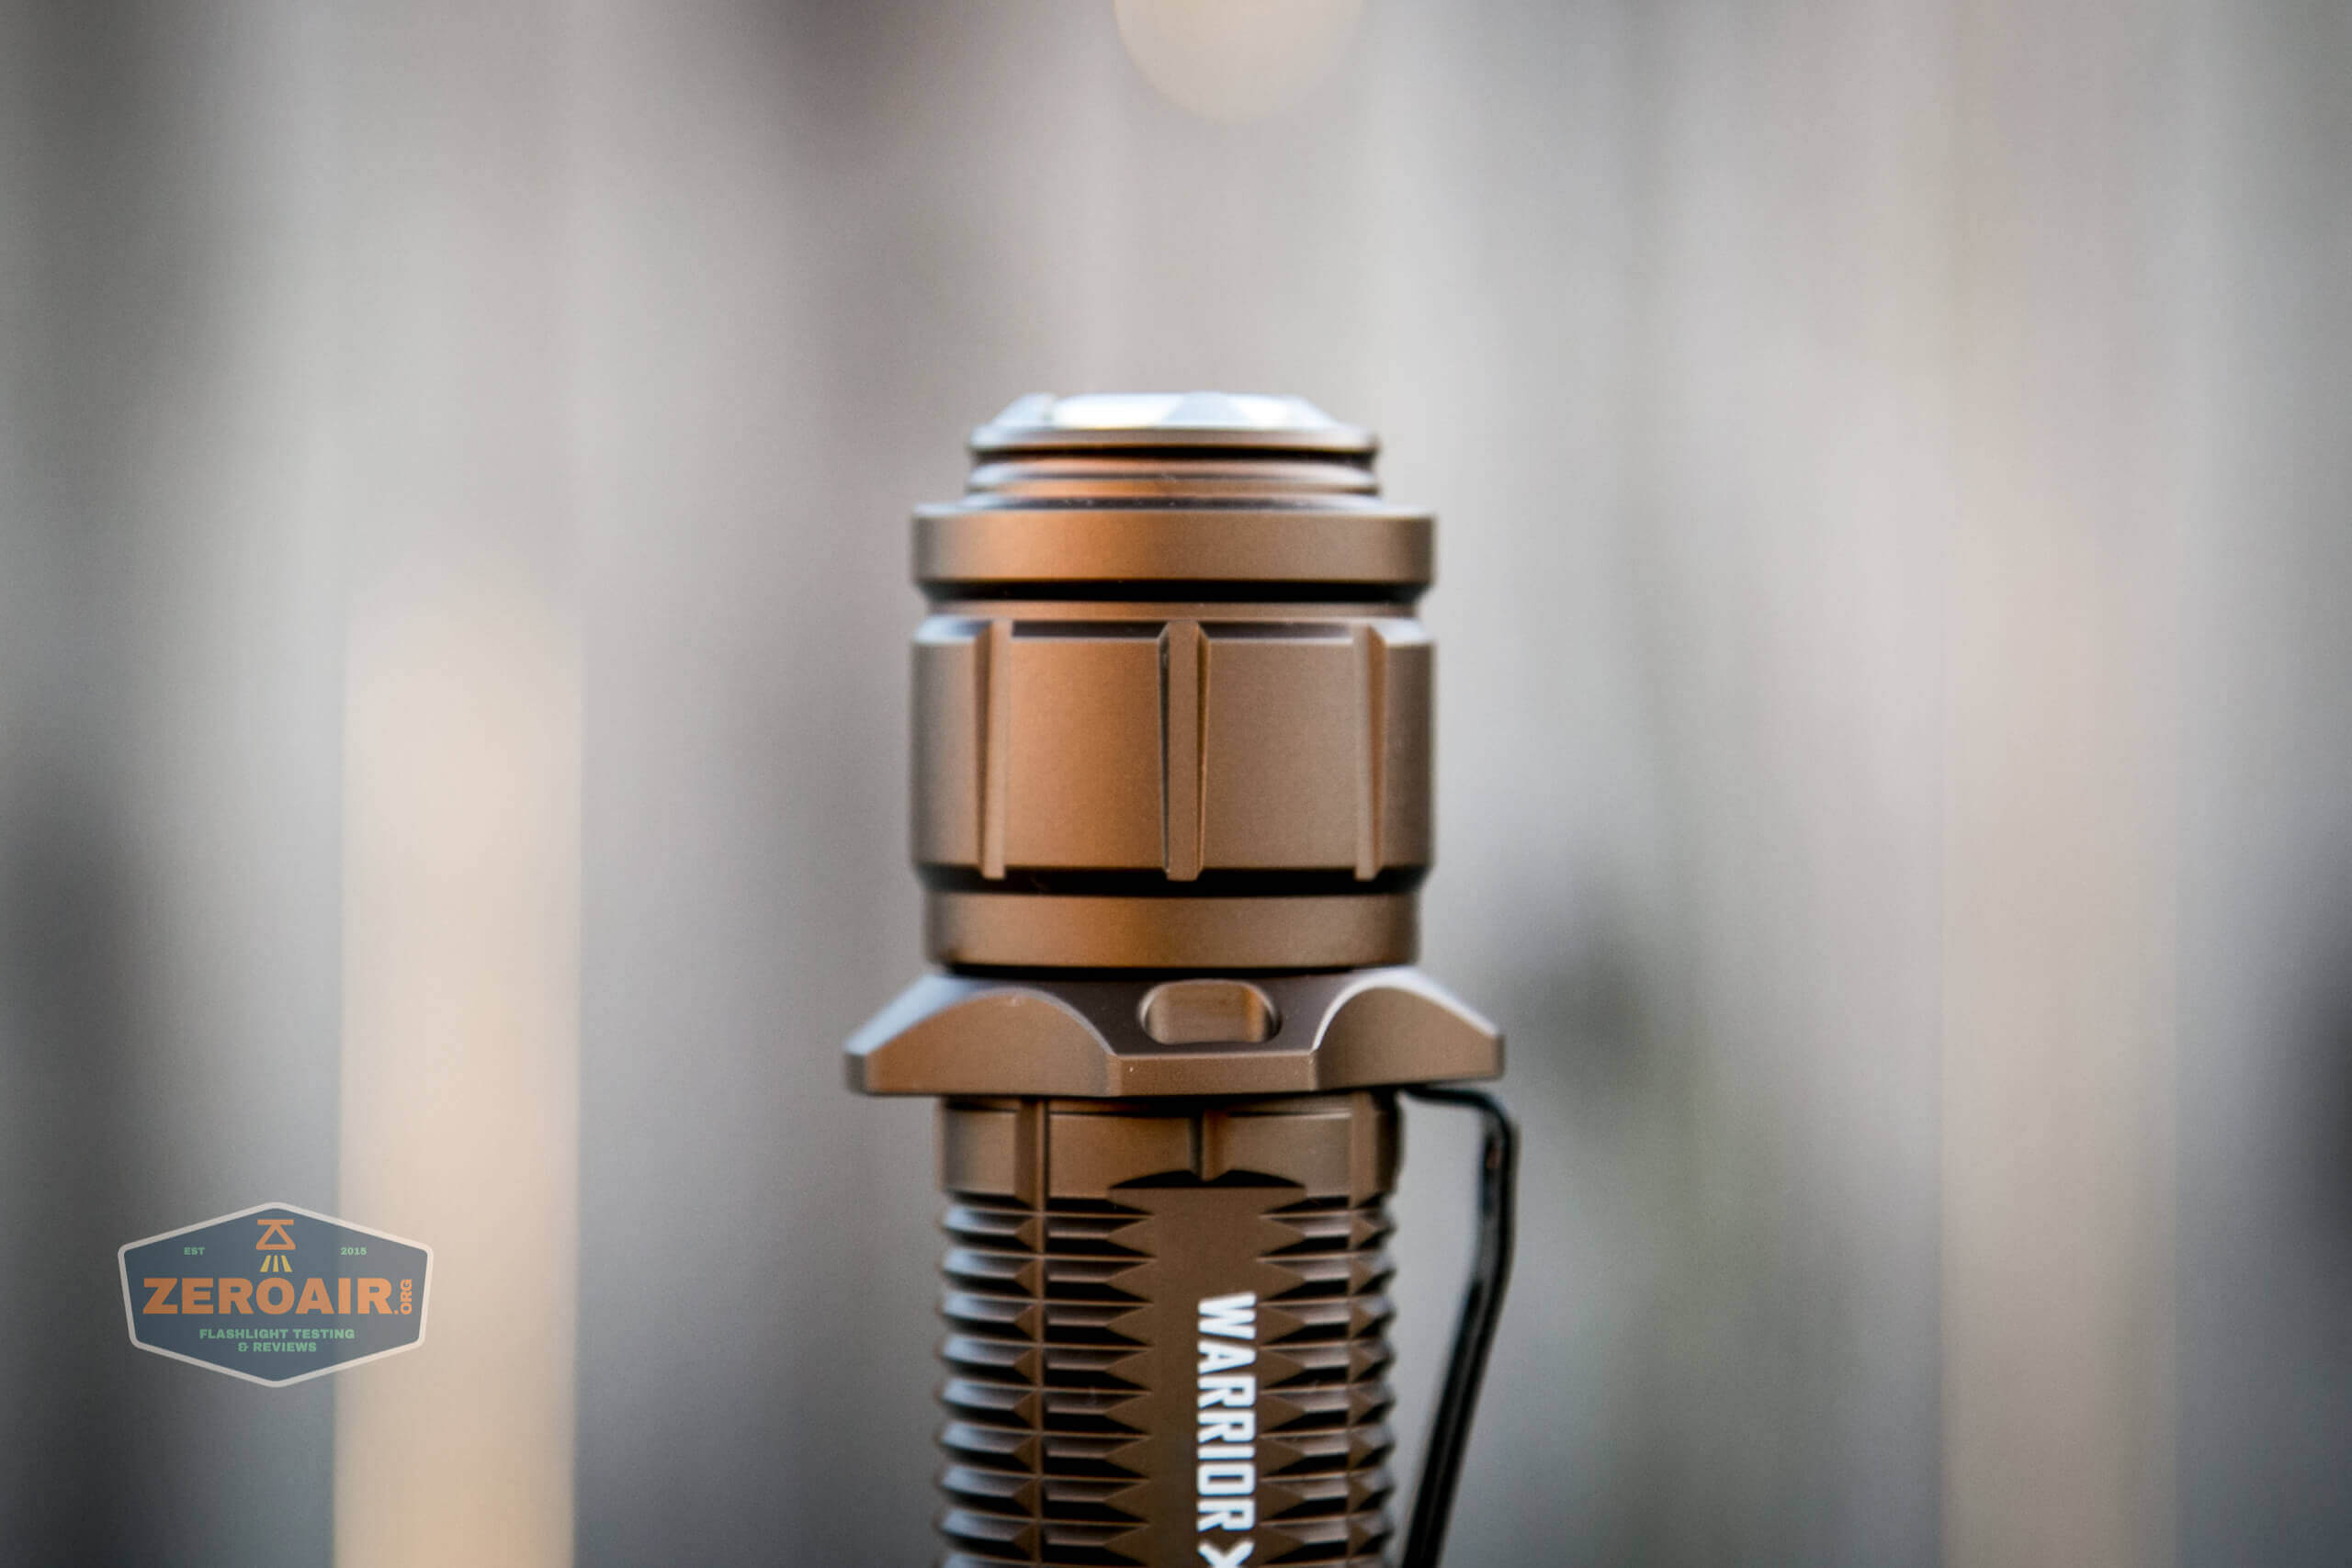 olight warrior x turbo desert tan flashlight tailcap profile